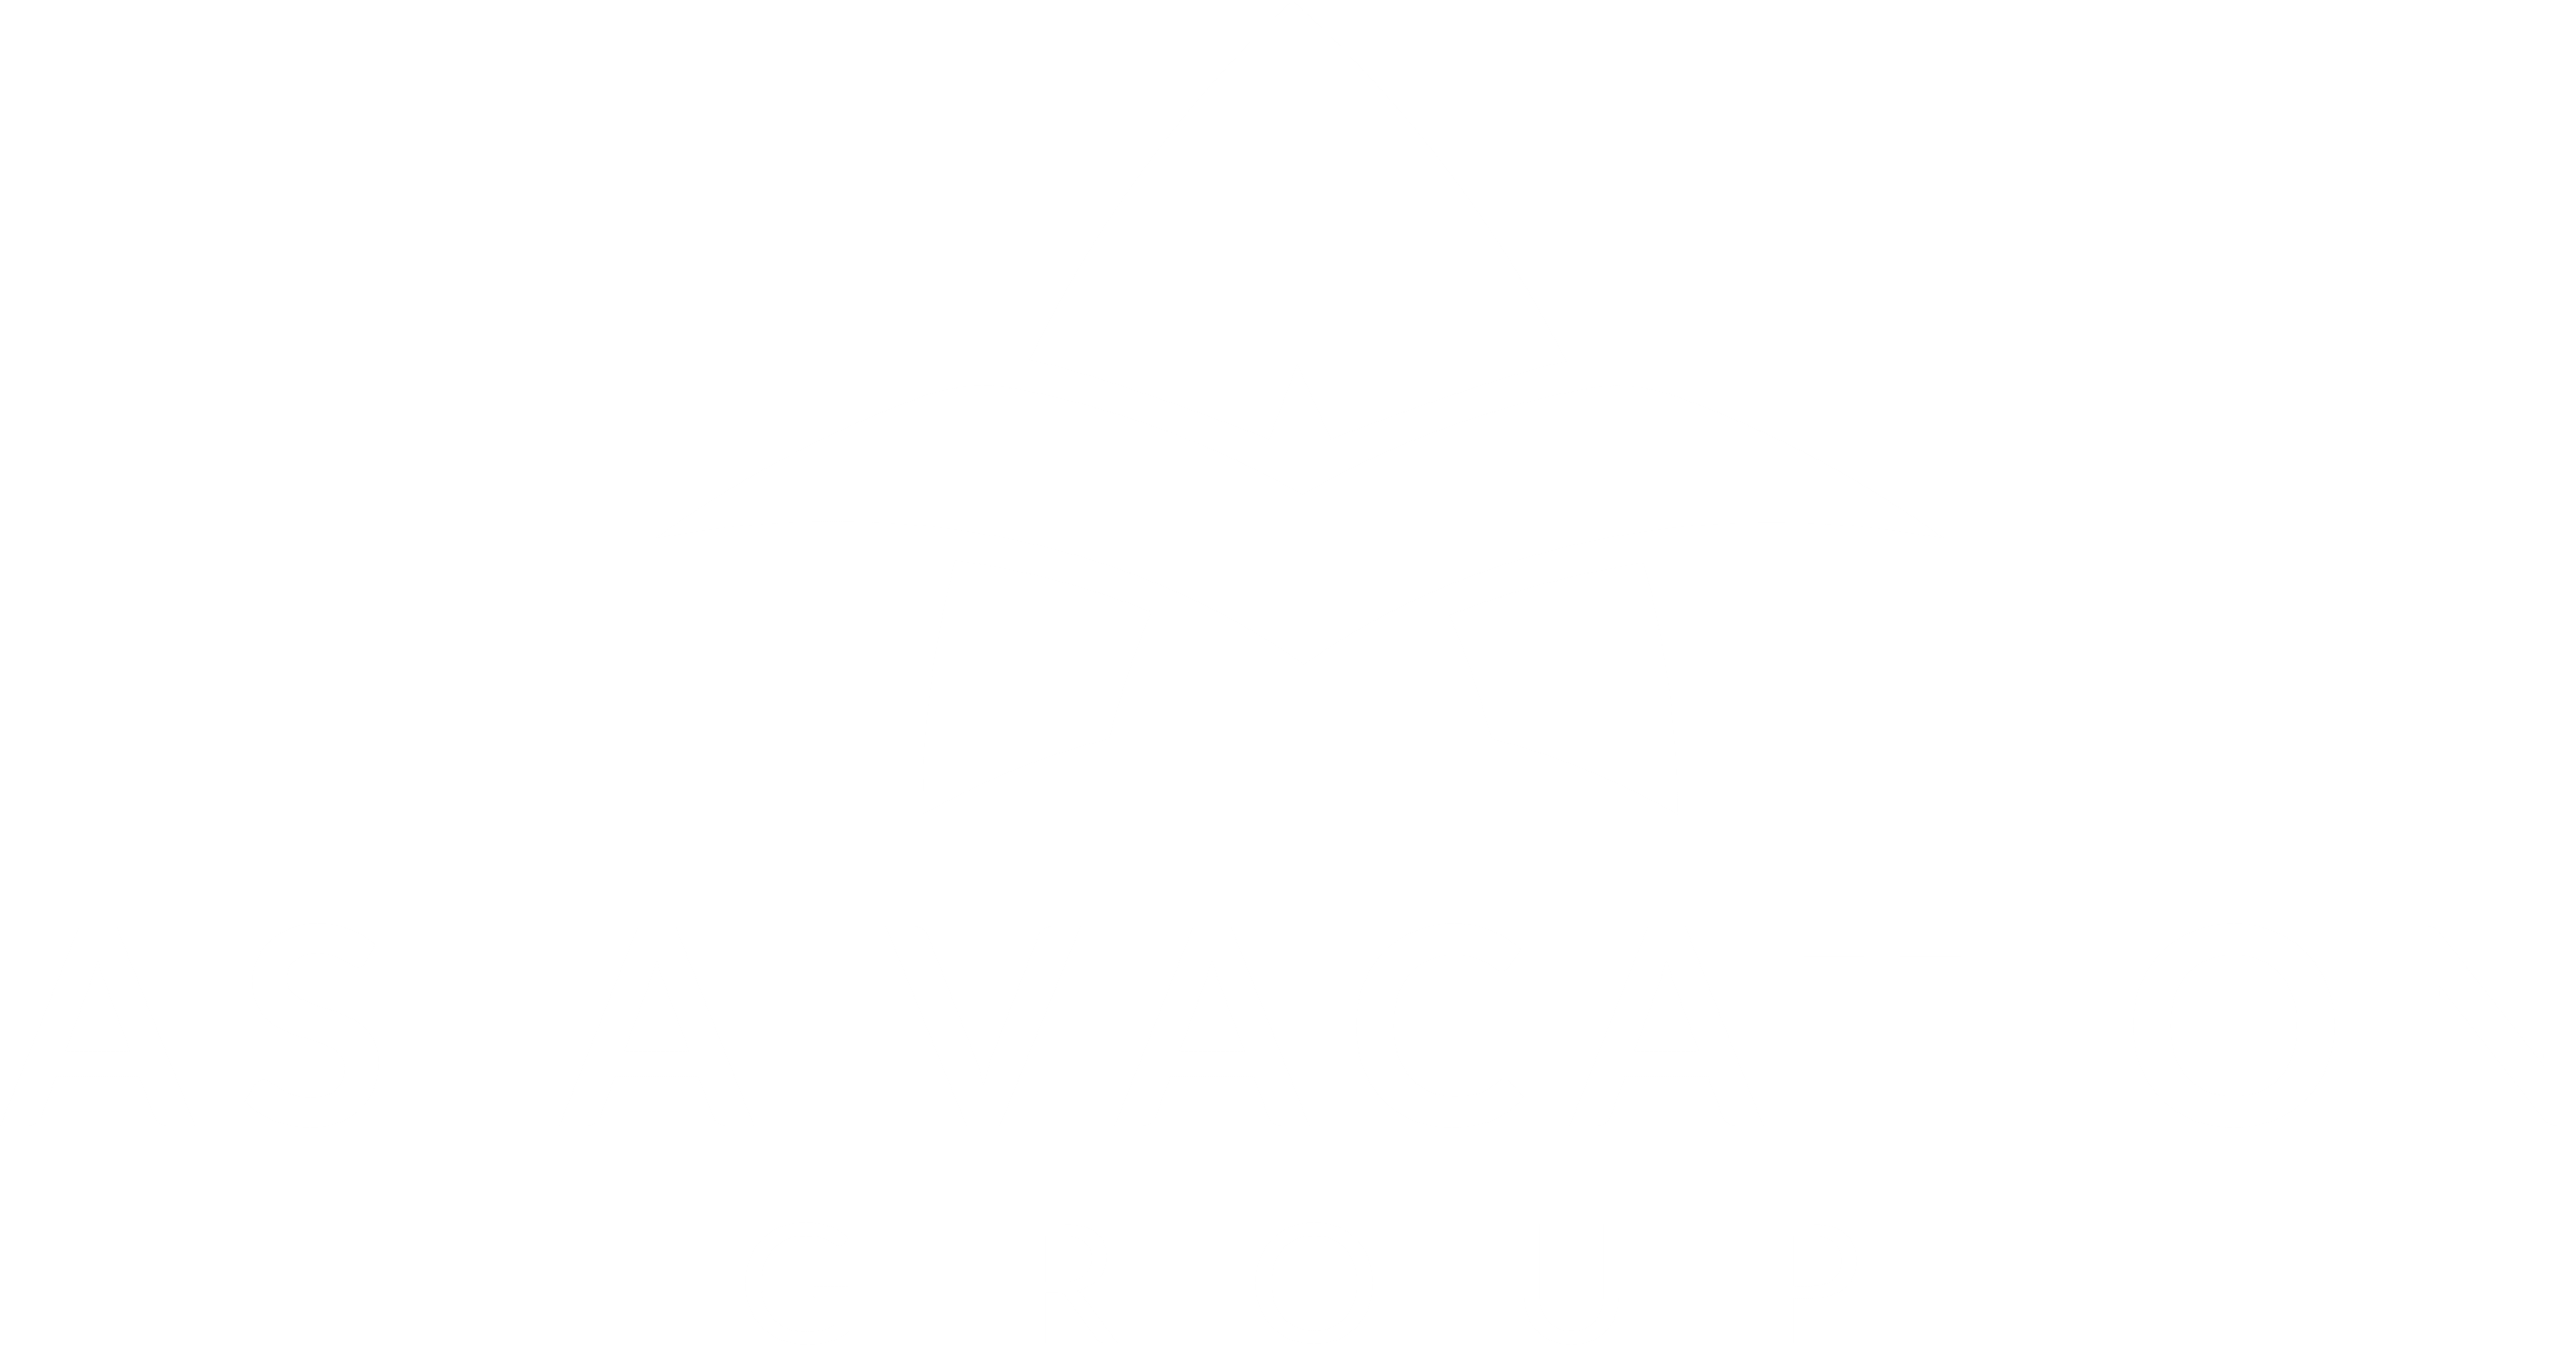 Asia Vacation Group logo